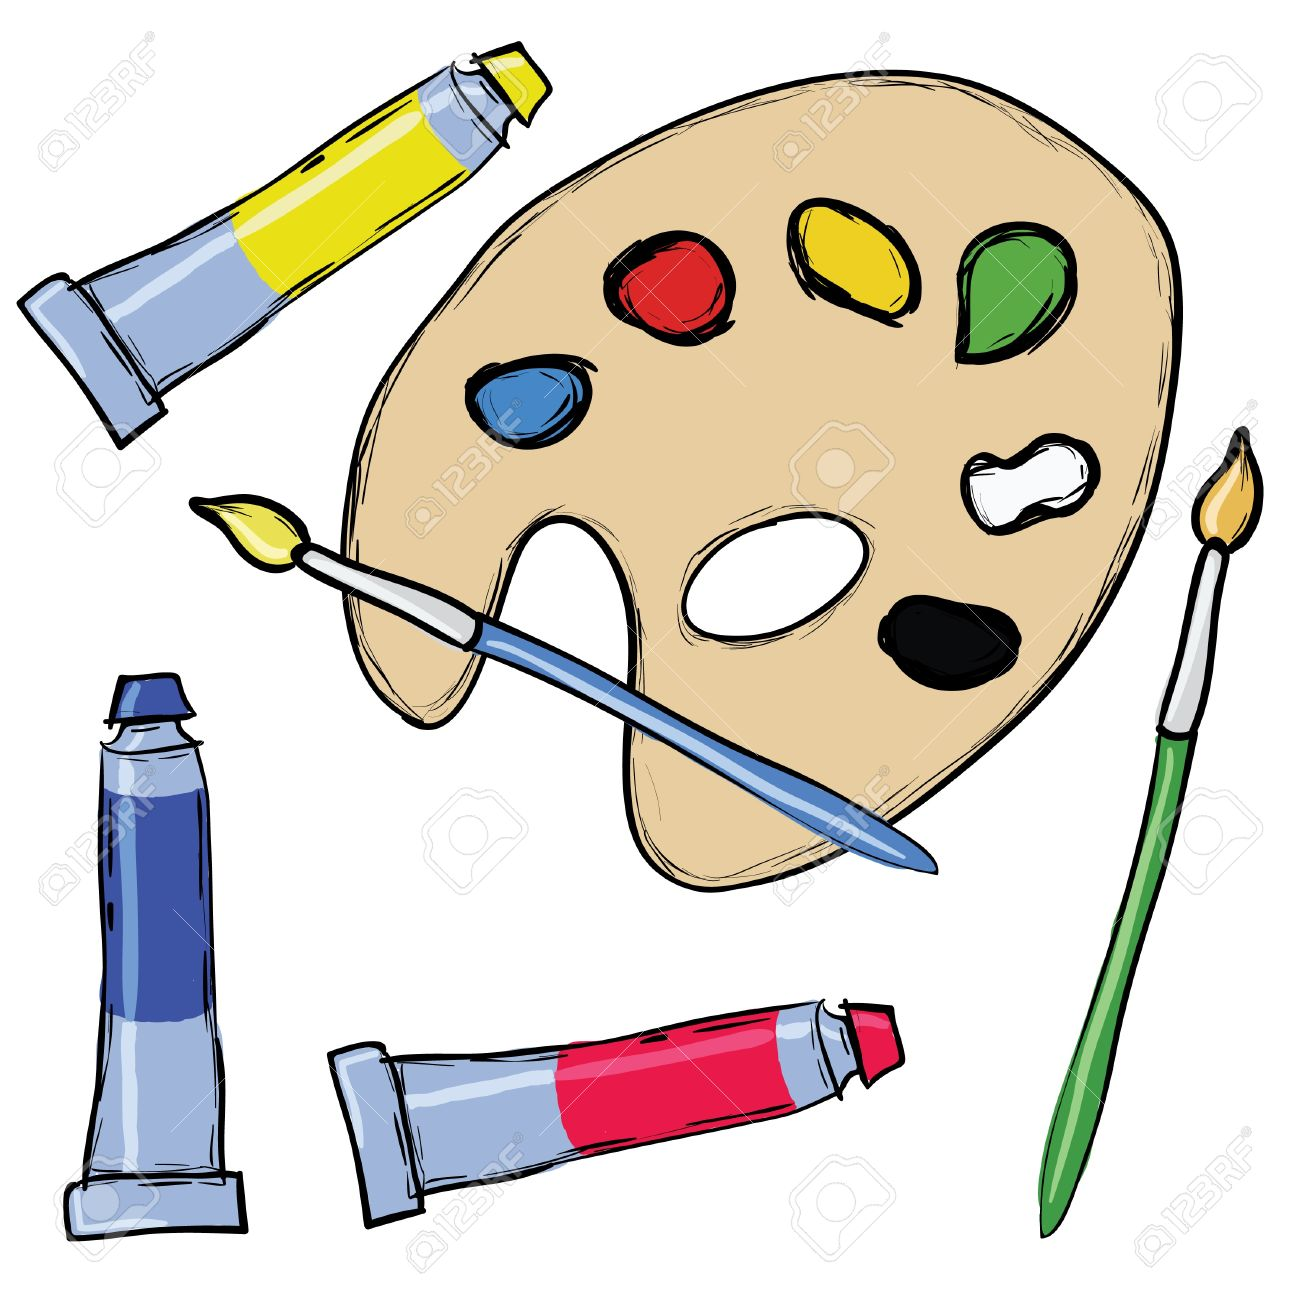 Paint set clipart.